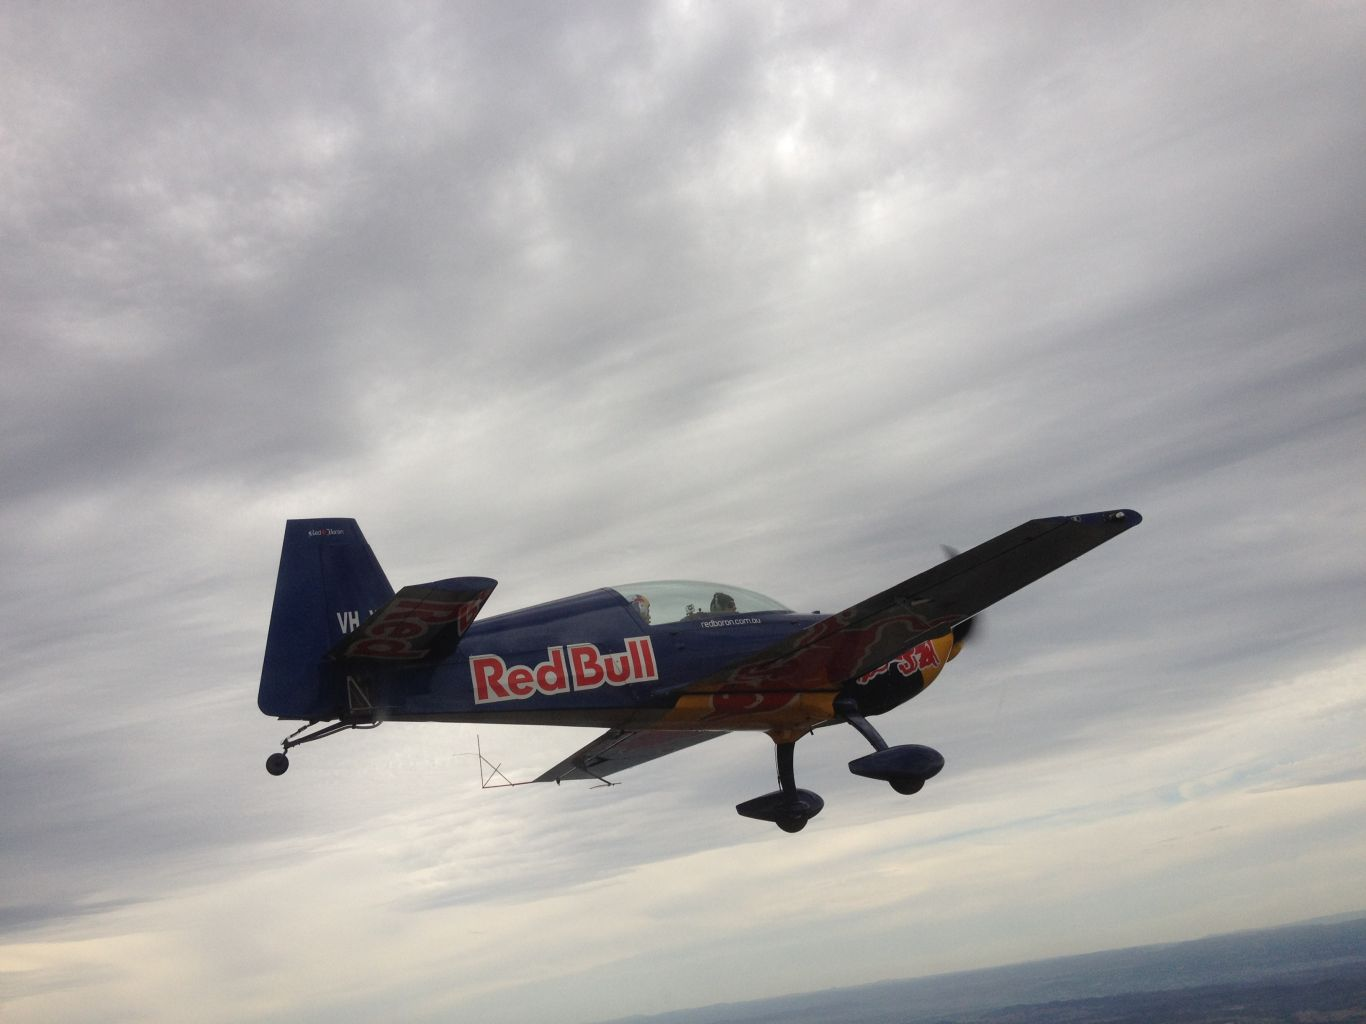 Formation flying, Alpha 160 and a Red Bull Extra!